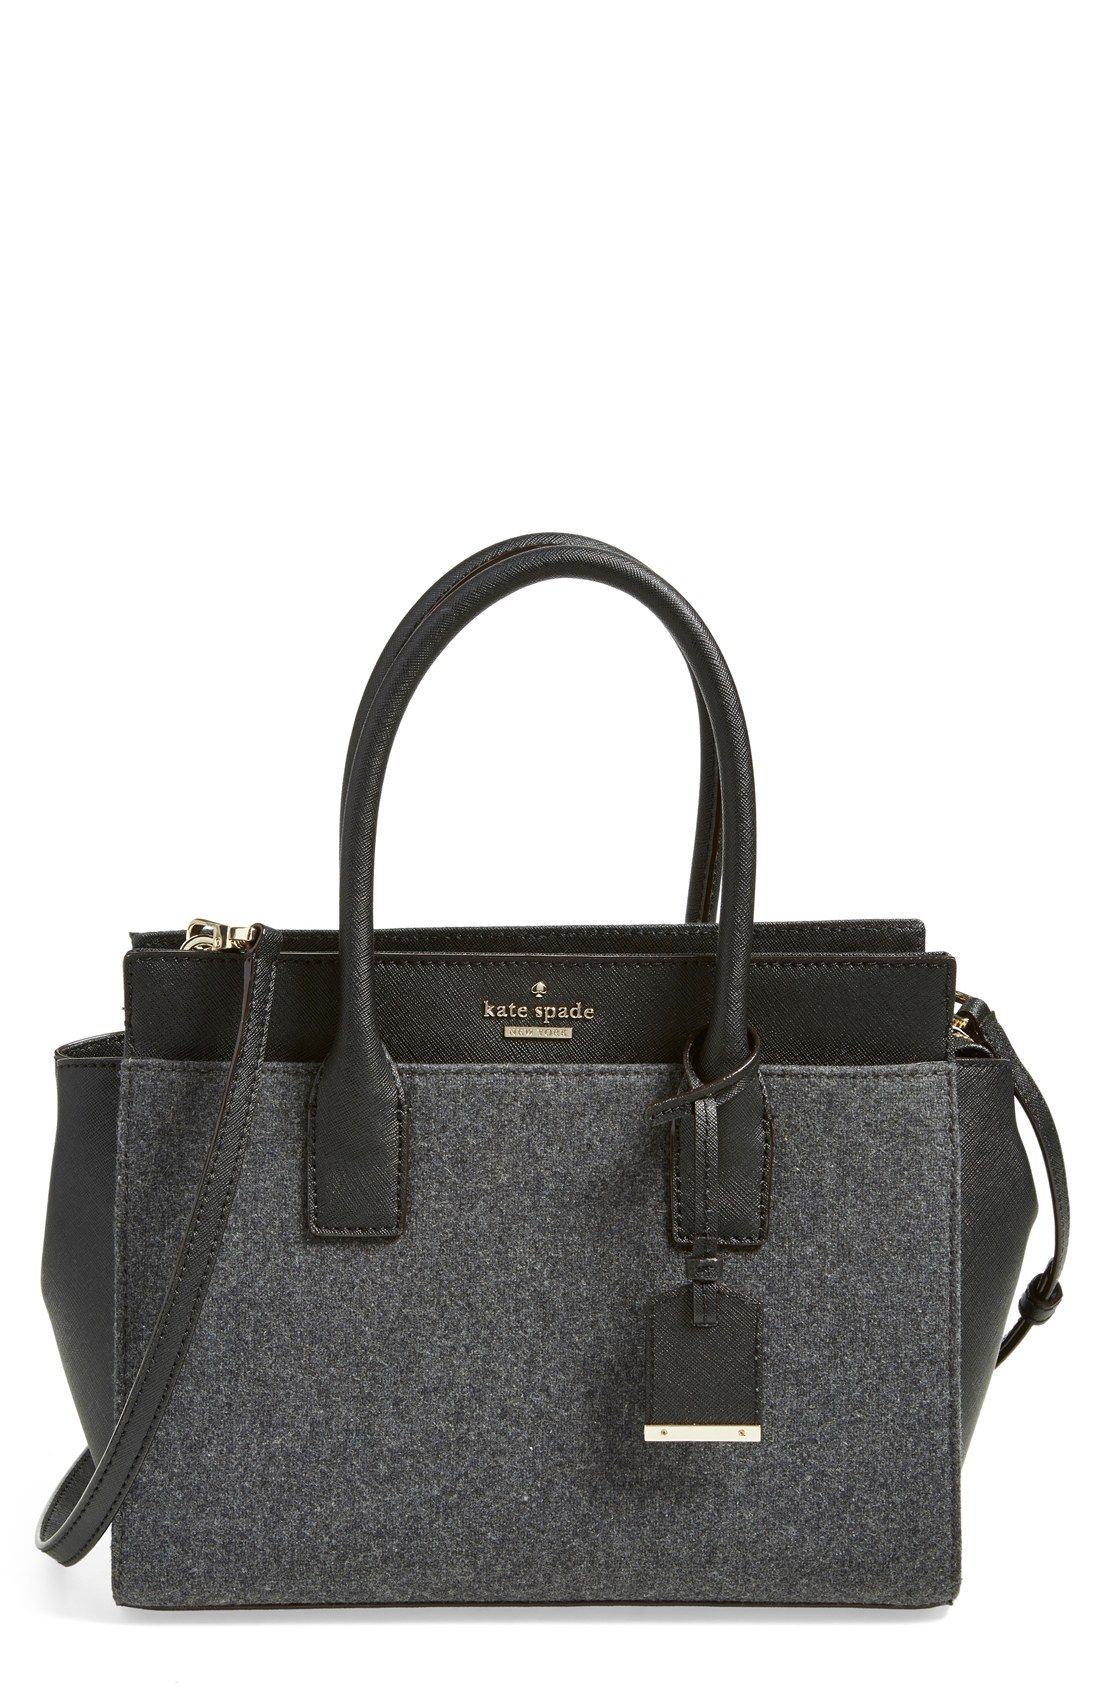 3041e646baba The heather grey flannel and the structured shape of this Kate Spade satchel  makes it the perfect go-to bag for fall.